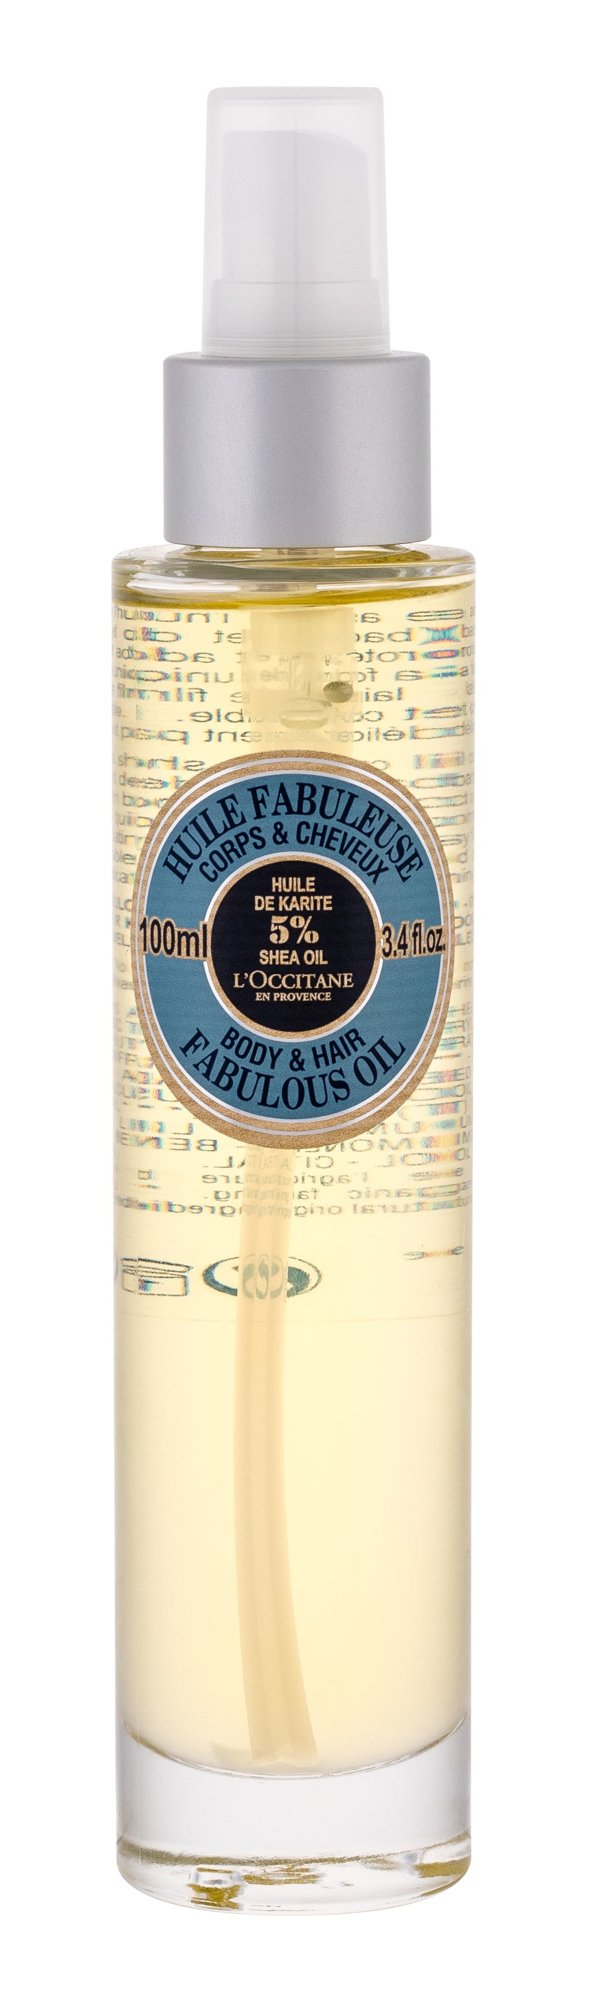 L´Occitane Shea Butter Body Oil 100ml